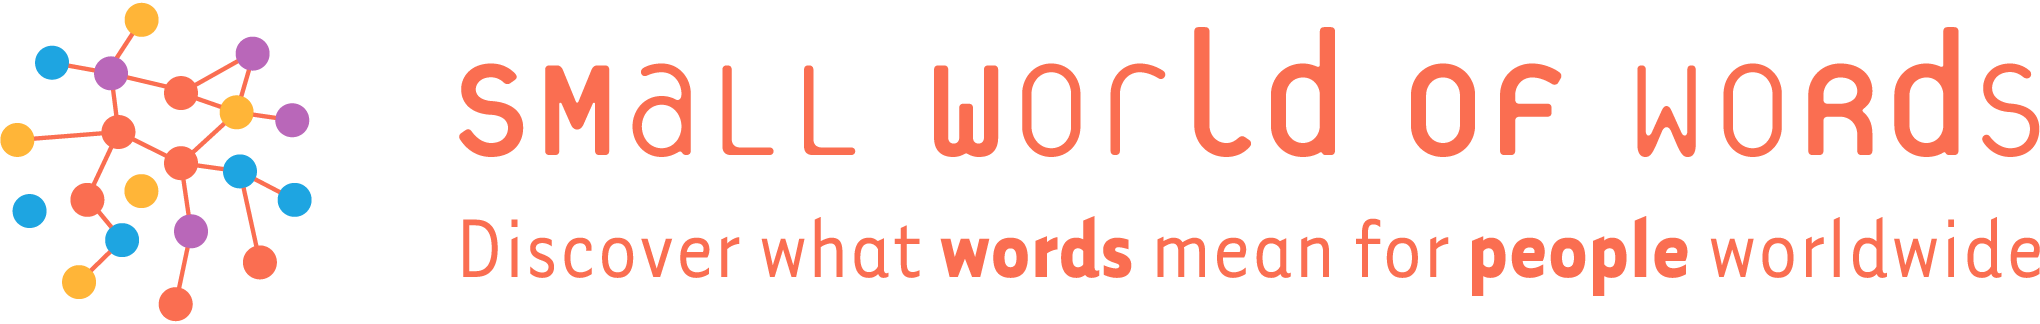 Small world of words logo